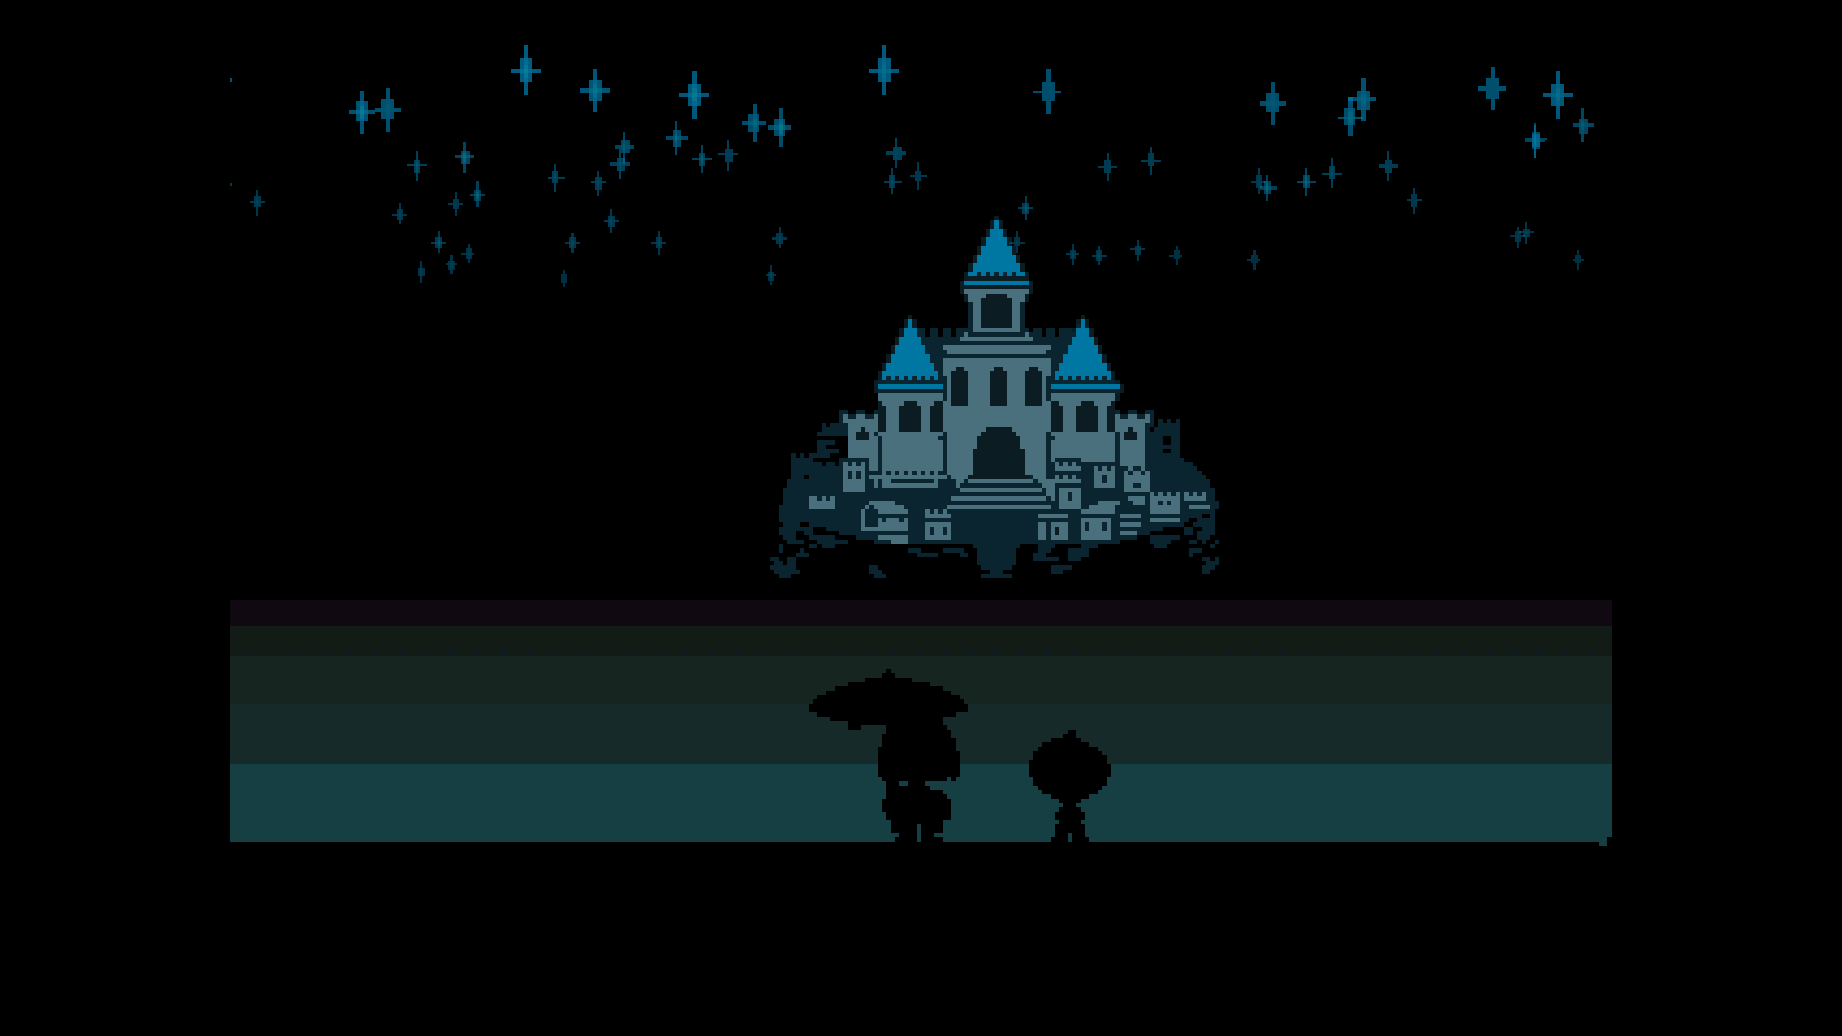 Nintnedo Fall Wallpapers Undertale May Be Making Its Way To The Wii U Hey Poor Player